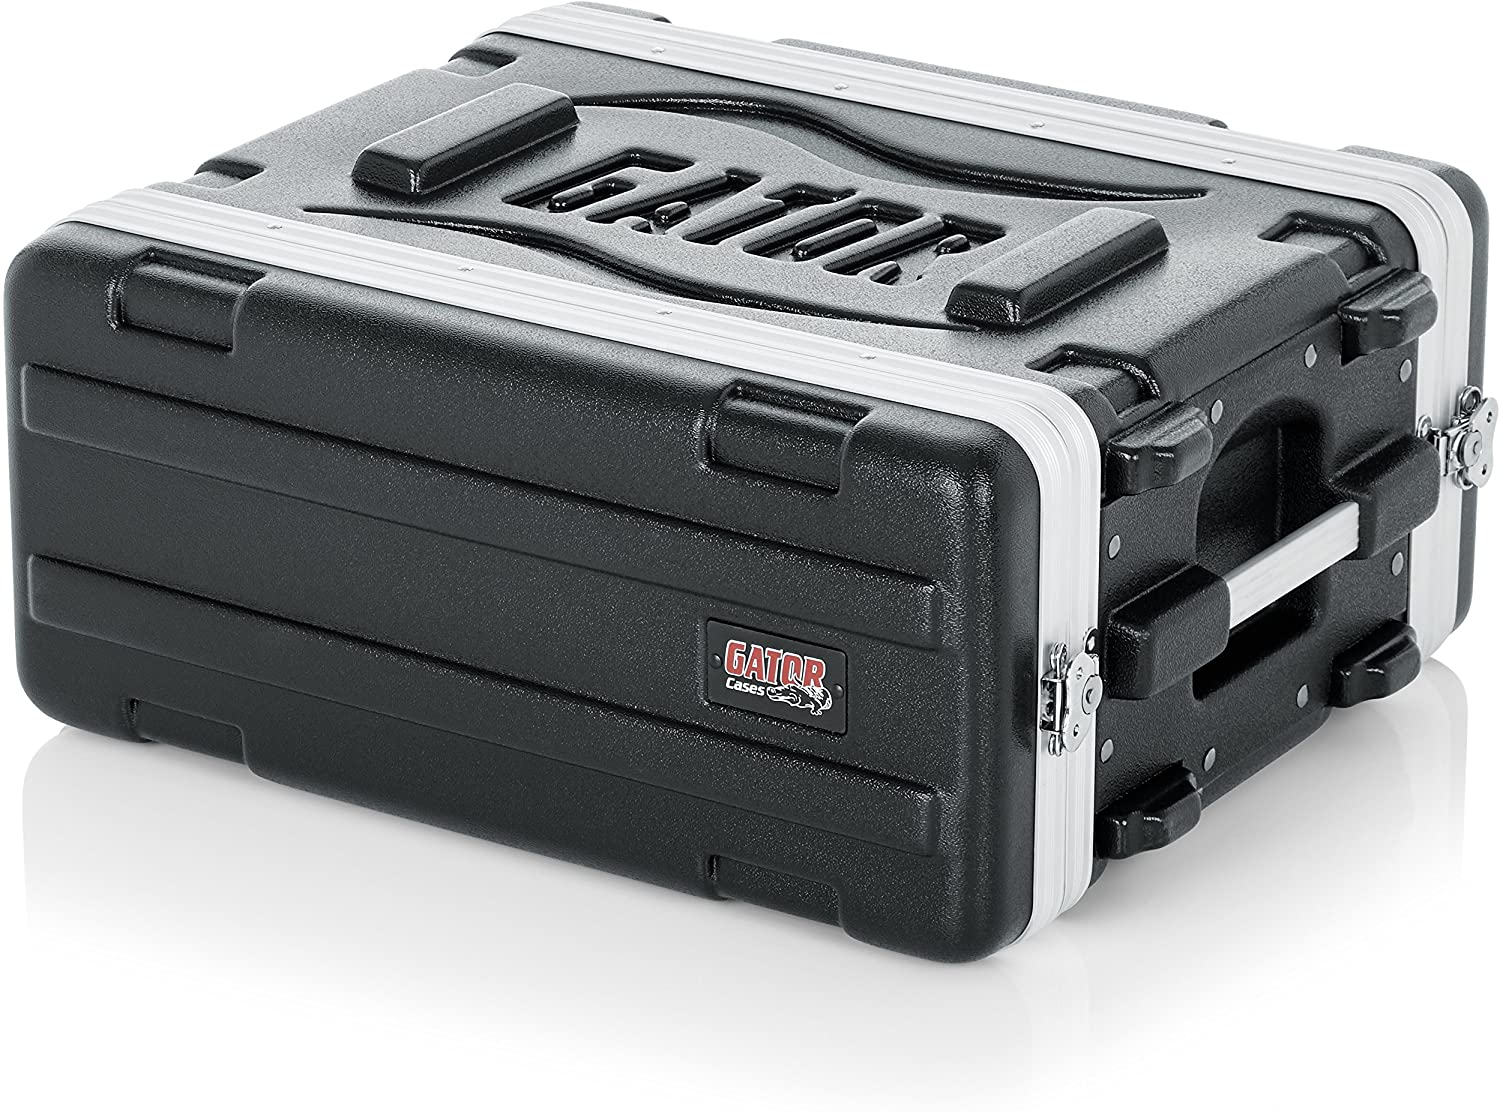 "Gator Cases Lightweight Molded 4U Rack Case with Heavy Duty Latches; Shallow 14.25"" depth, 4U (GR-4S)"